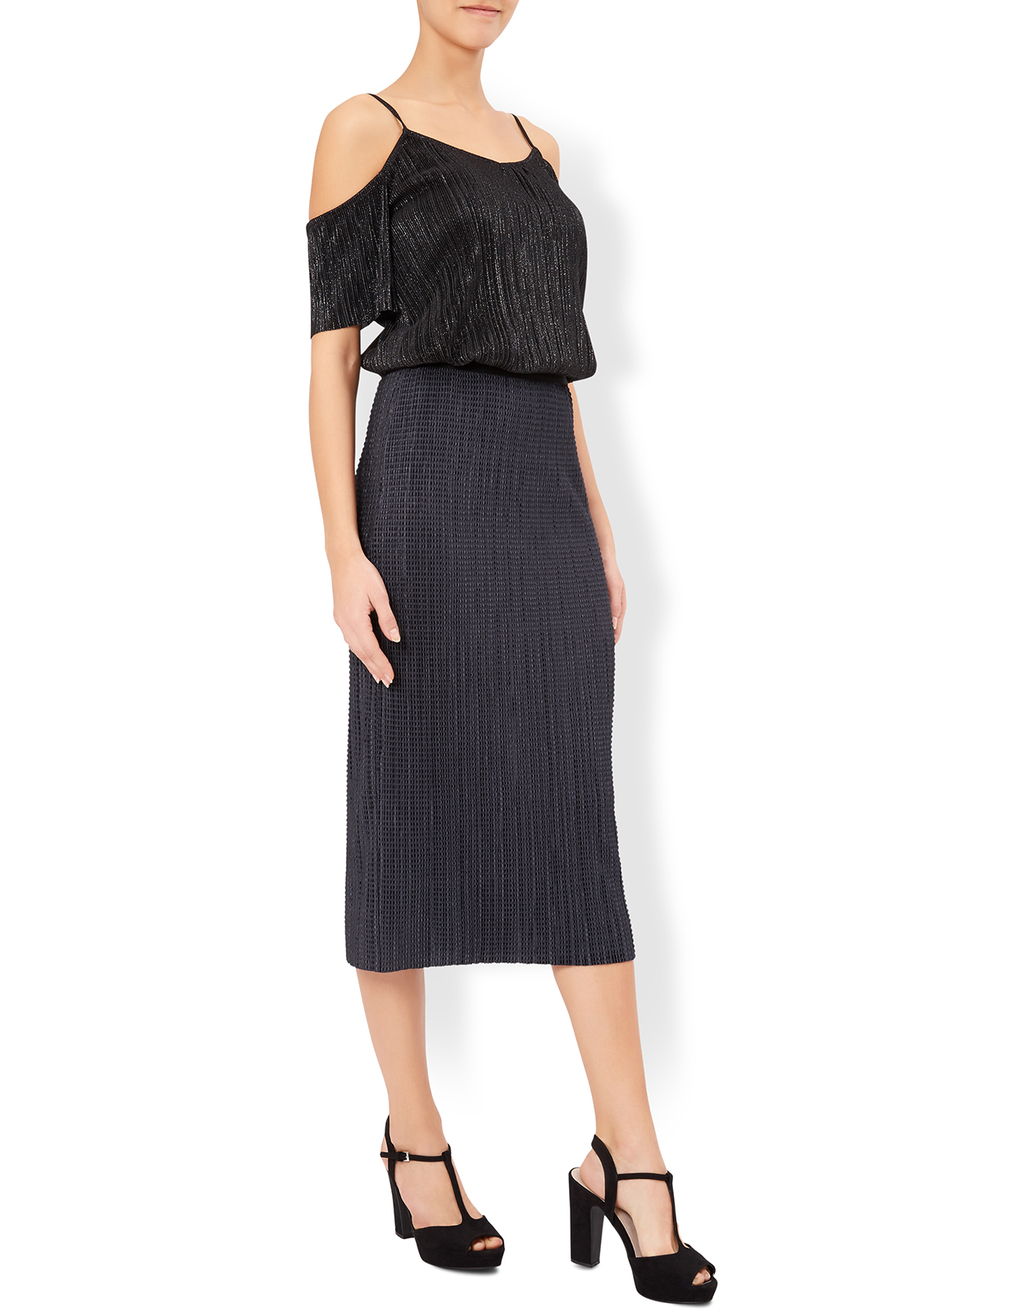 Vanessa Plisse Midi Skirt - length: below the knee; pattern: plain; fit: body skimming; style: pleated; waist: high rise; predominant colour: charcoal; occasions: evening; fibres: polyester/polyamide - 100%; texture group: silky - light; pattern type: fabric; season: a/w 2016; wardrobe: event